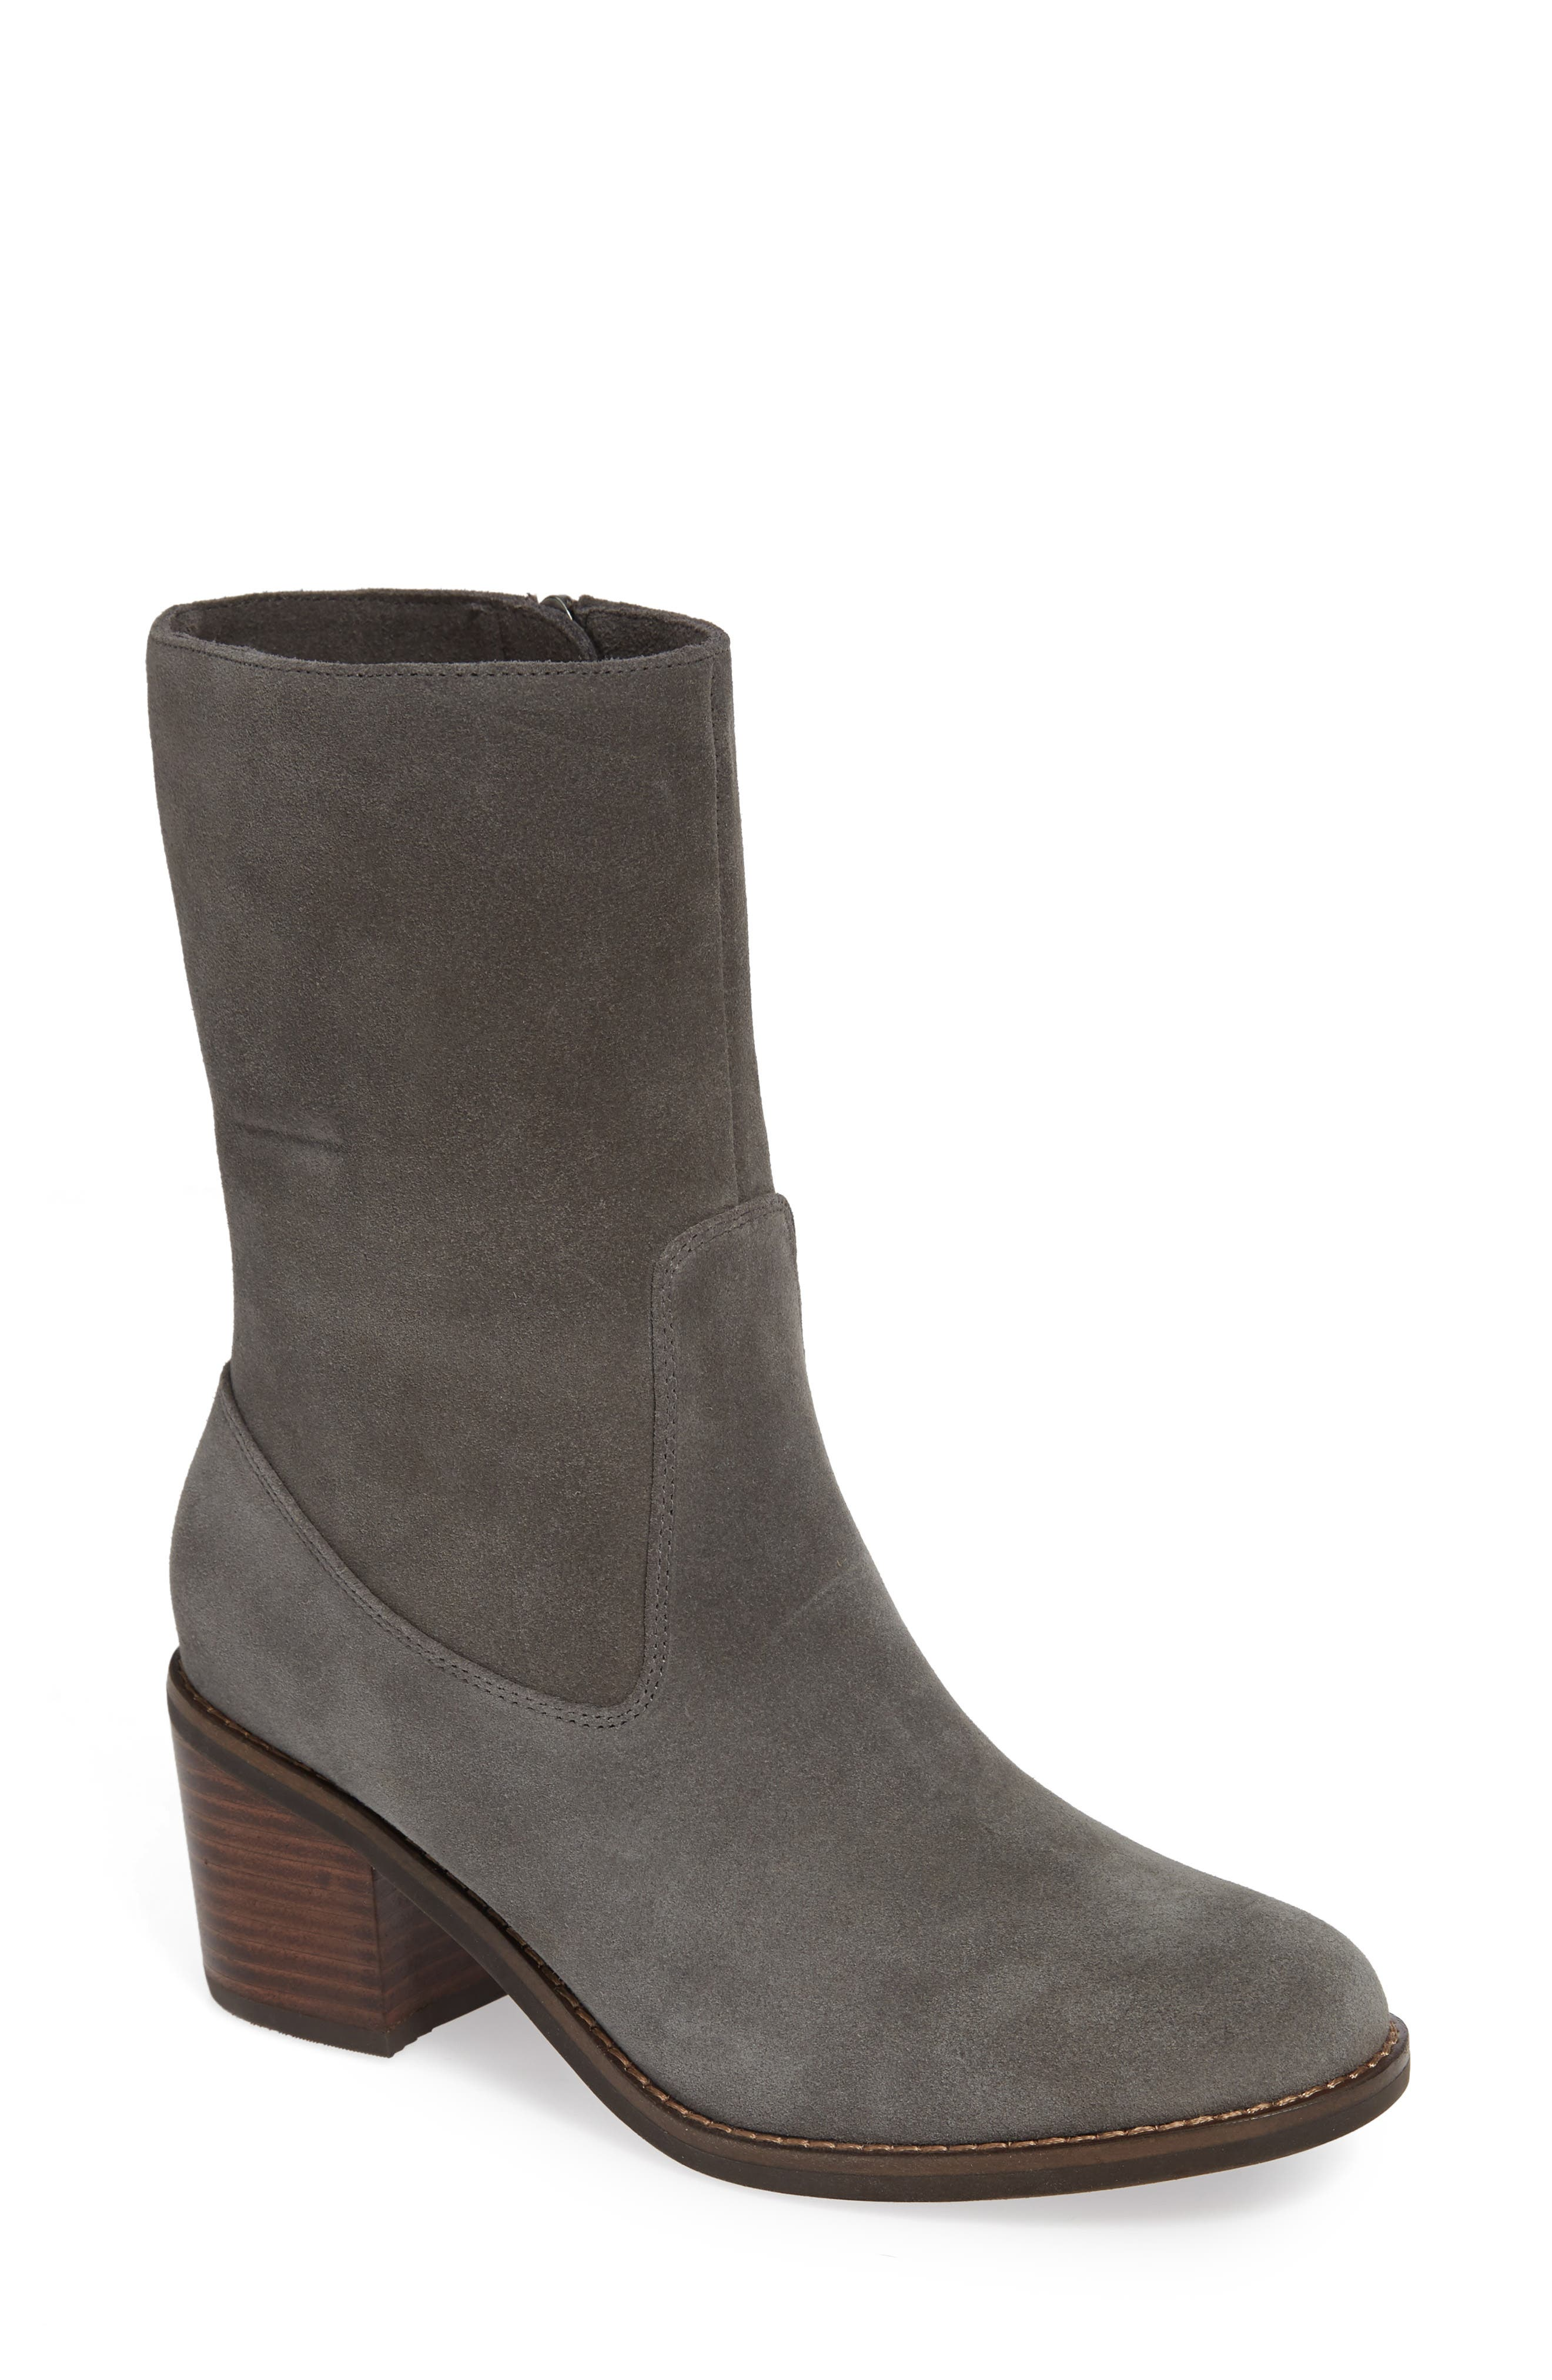 GENTLE SOULS BY KENNETH COLE Verona Bootie, Main, color, 020